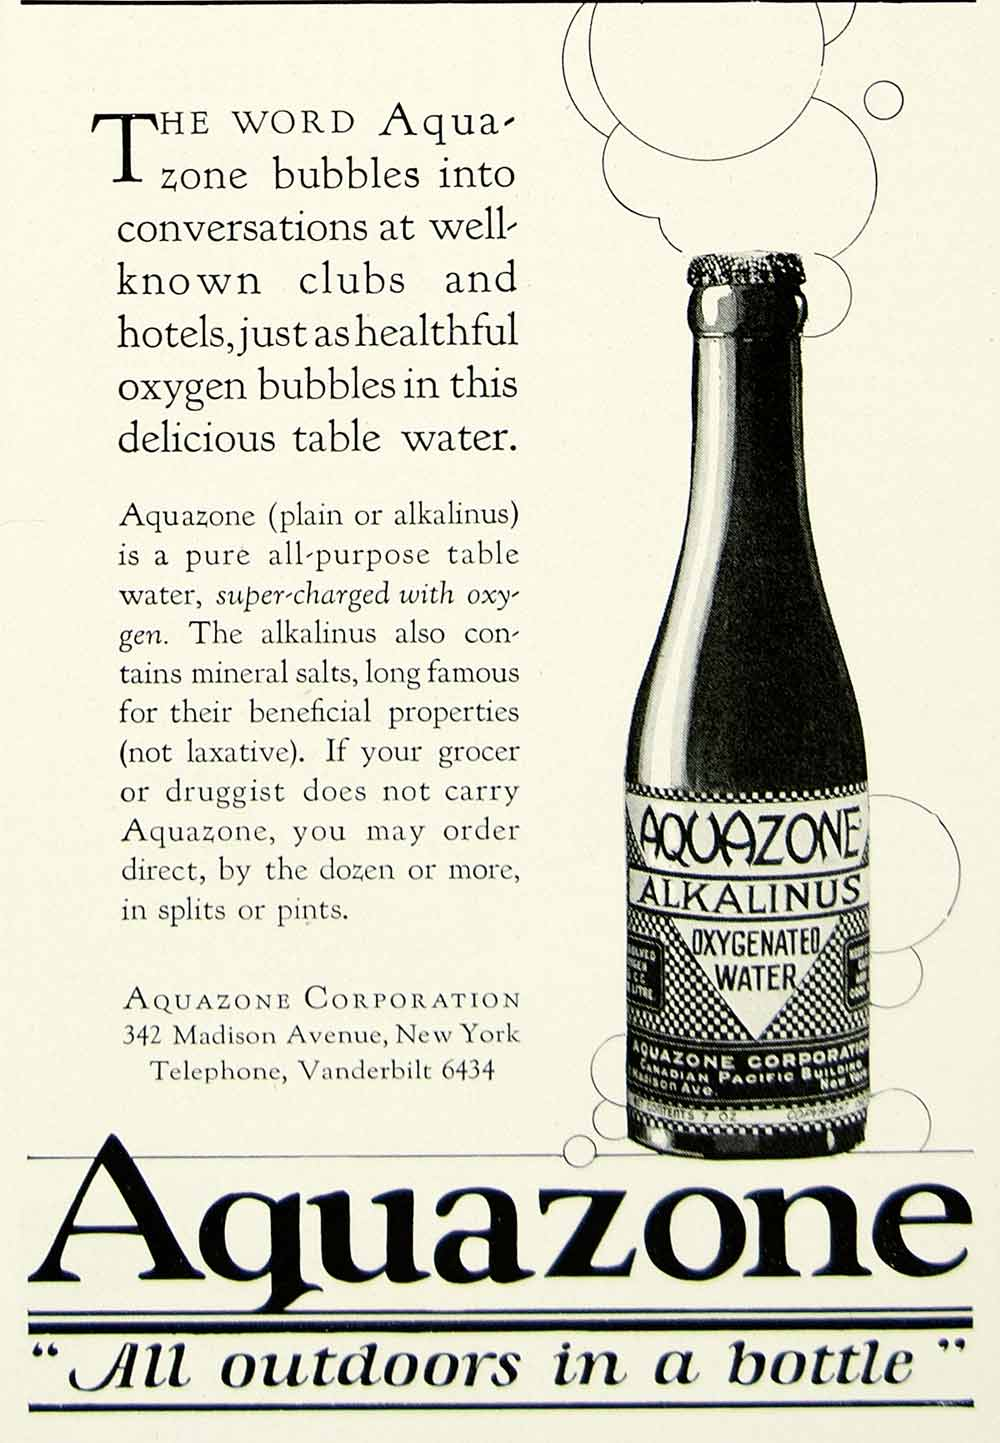 1924 Ad Aquazone Oxygenated Water Bottle Alkalinus 342 Madison Ave NY YTS2